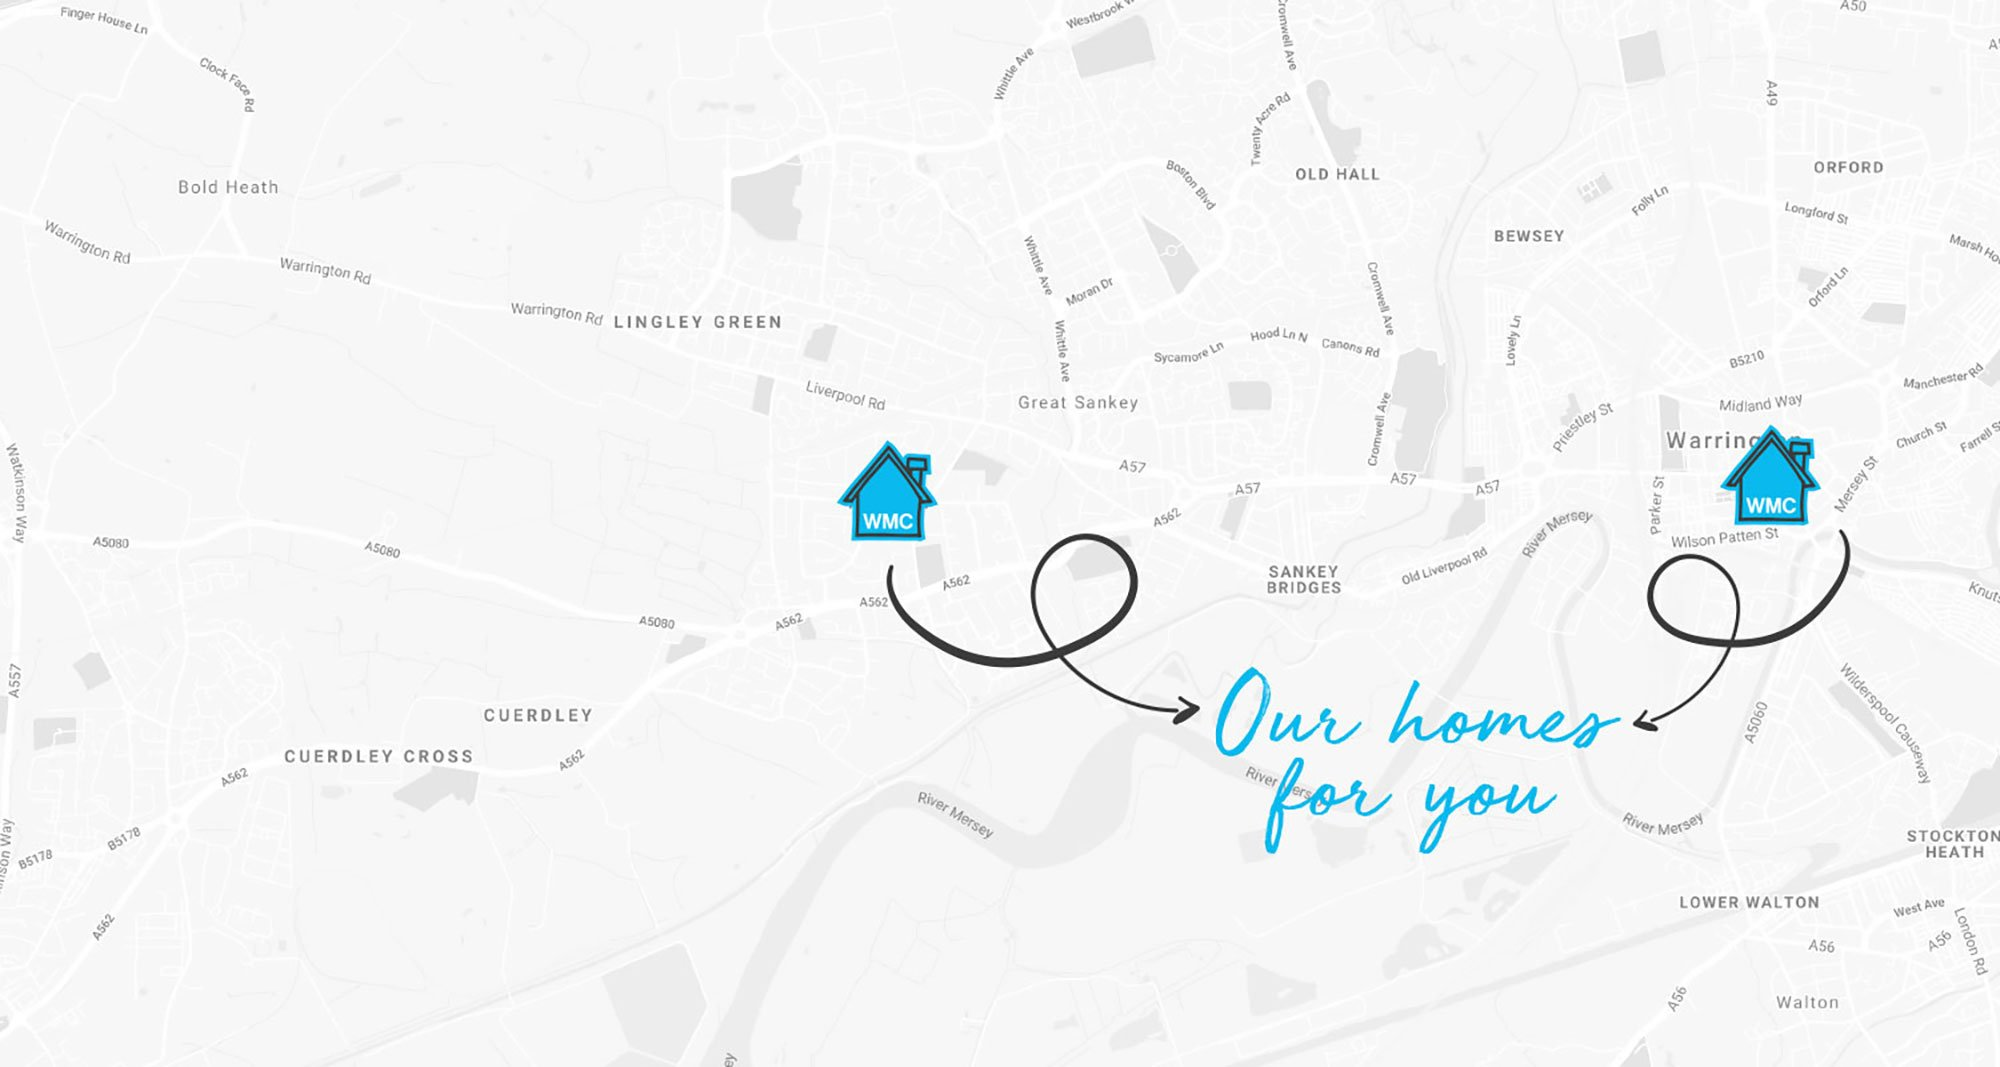 our homes in warrington